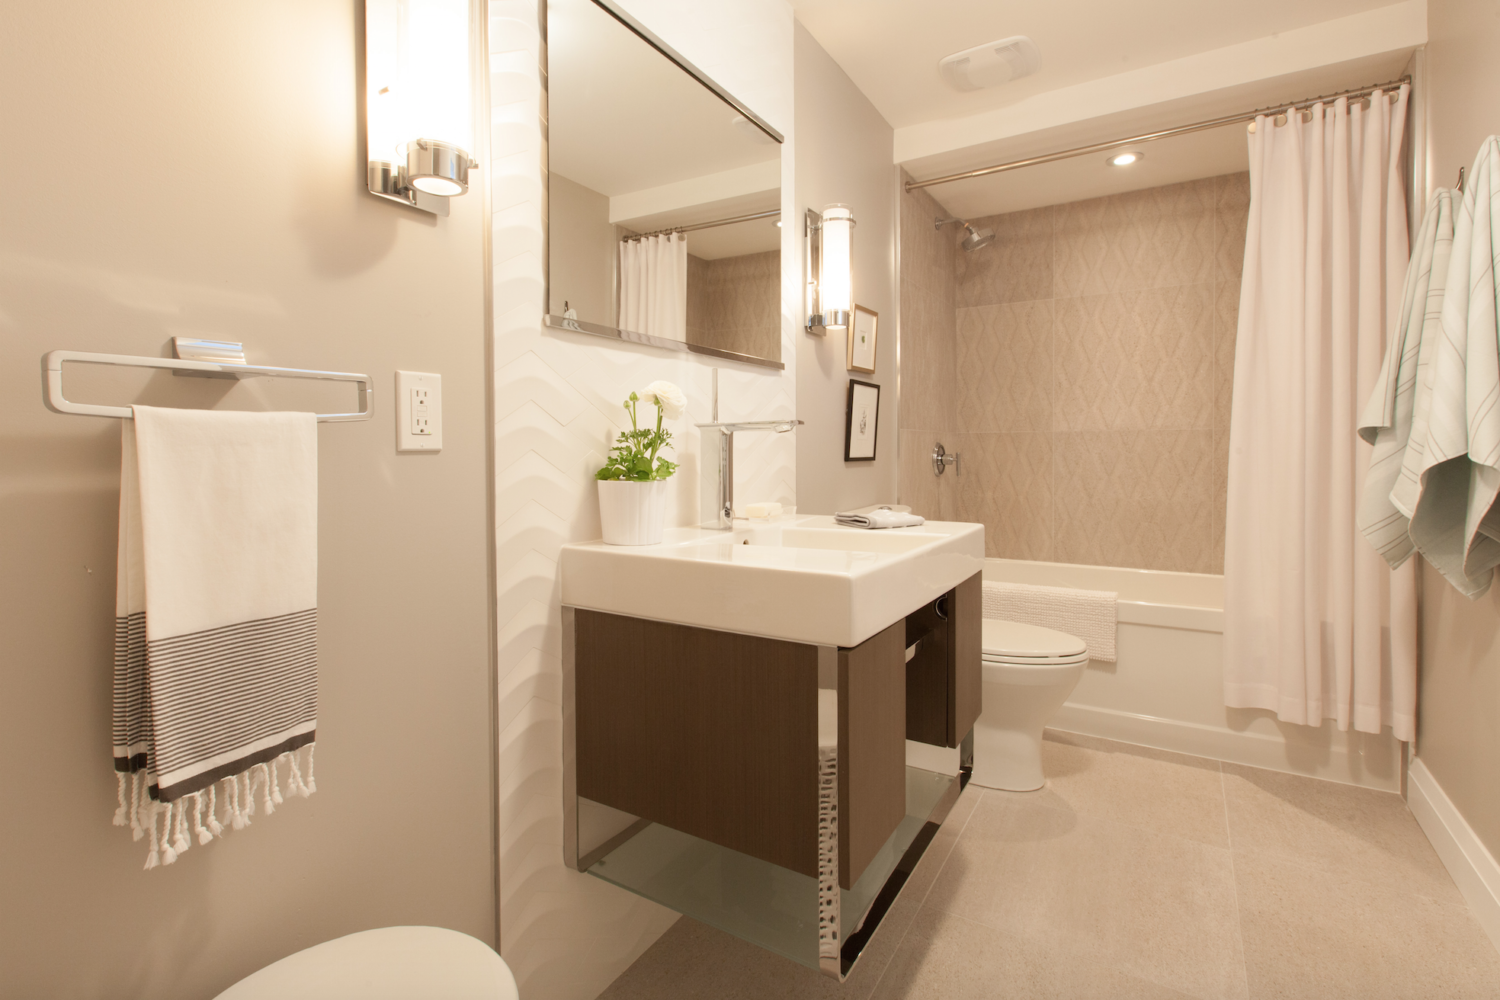 recent work for plumbing in newcastle - image is of a new bathroom suite fitted